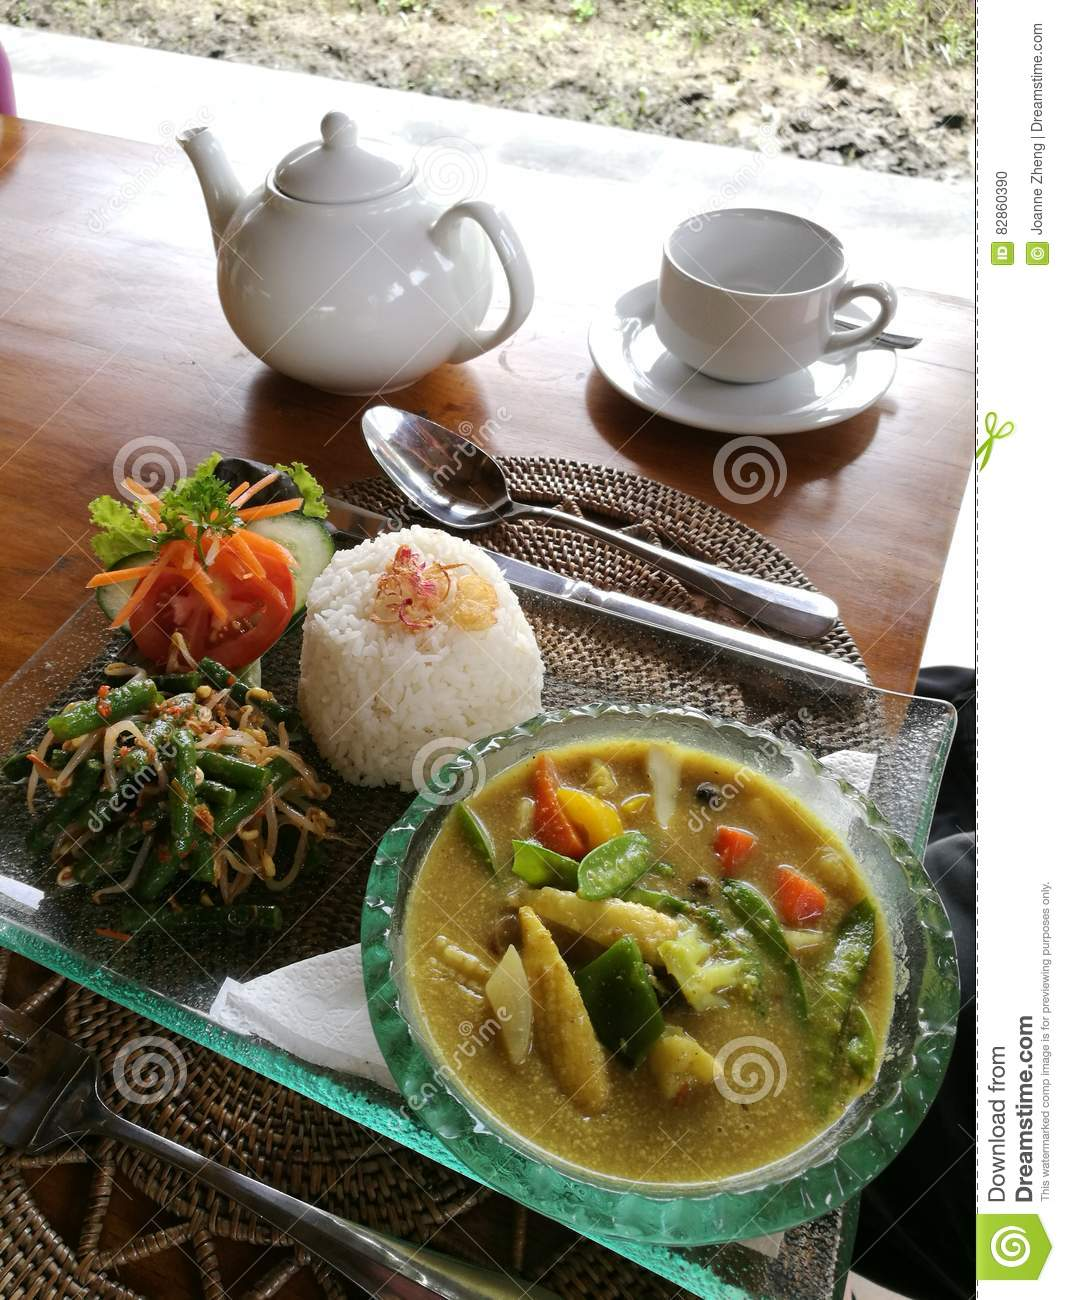 Cuisine Bali Balinese Cuisine Vegetables Curry With Rice Stock Photo Image Of